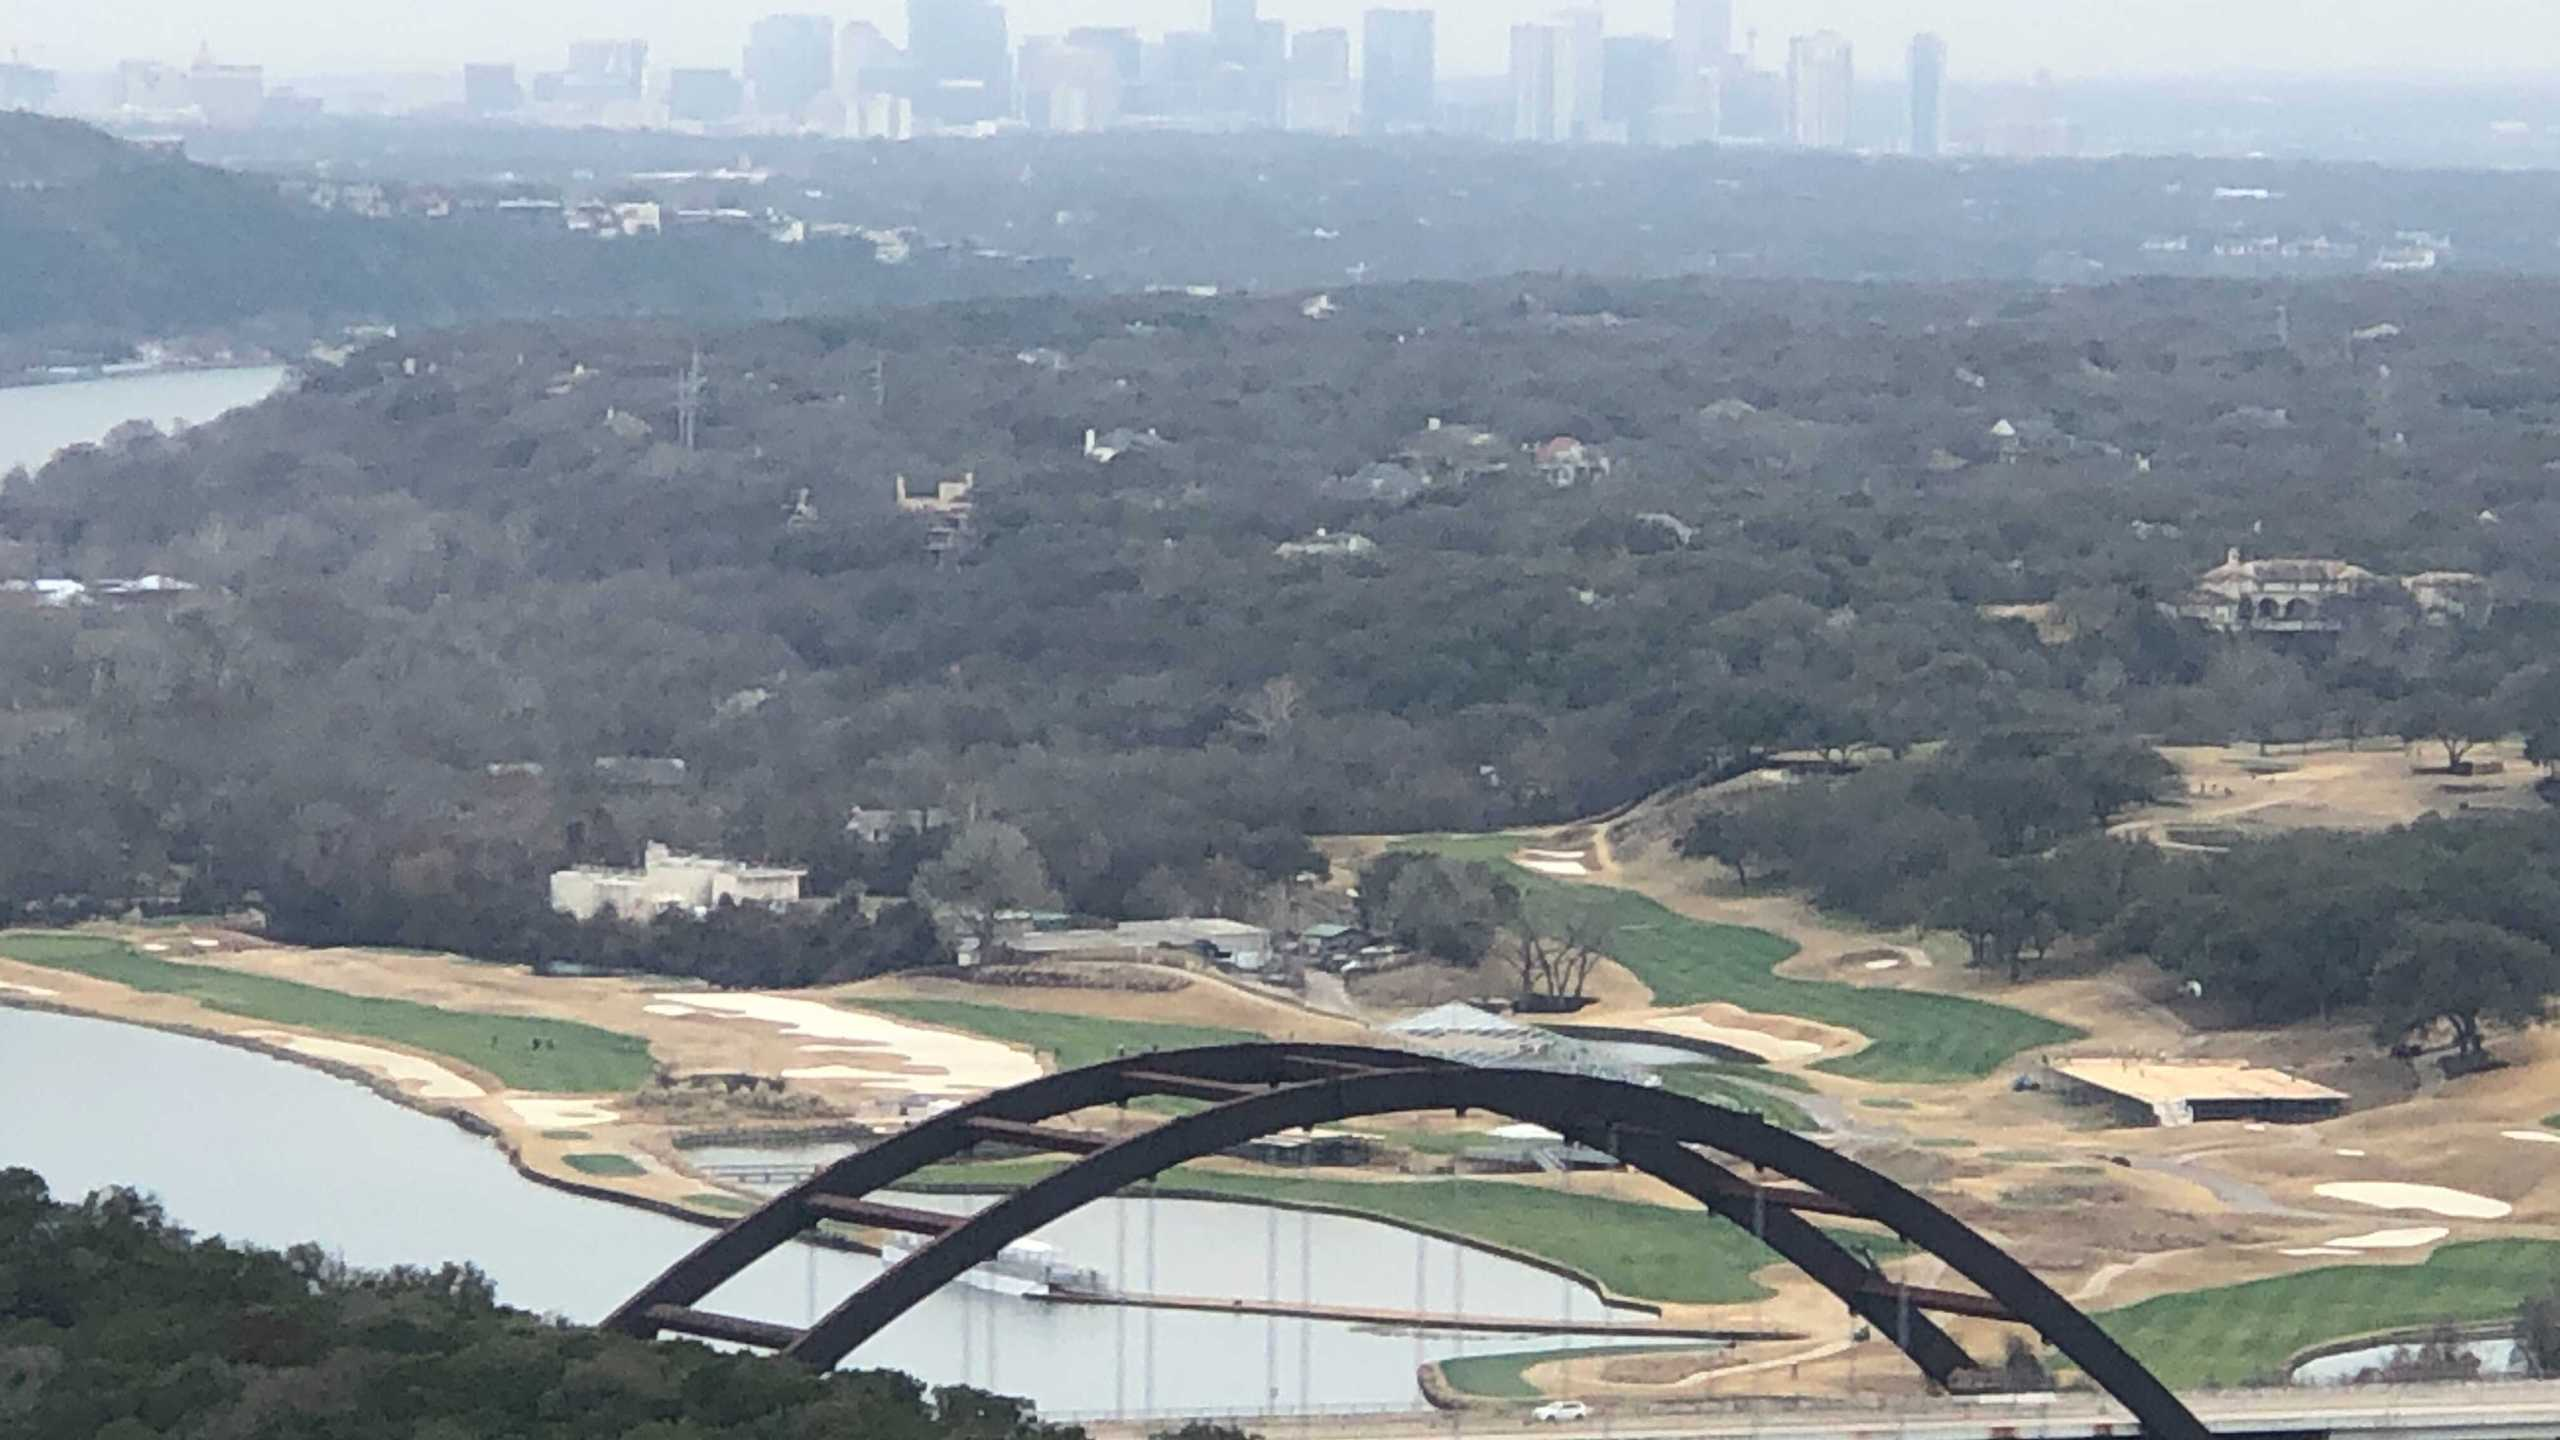 View of downtown Austin covered in mist/fog (KXAN/Frank Martinez)